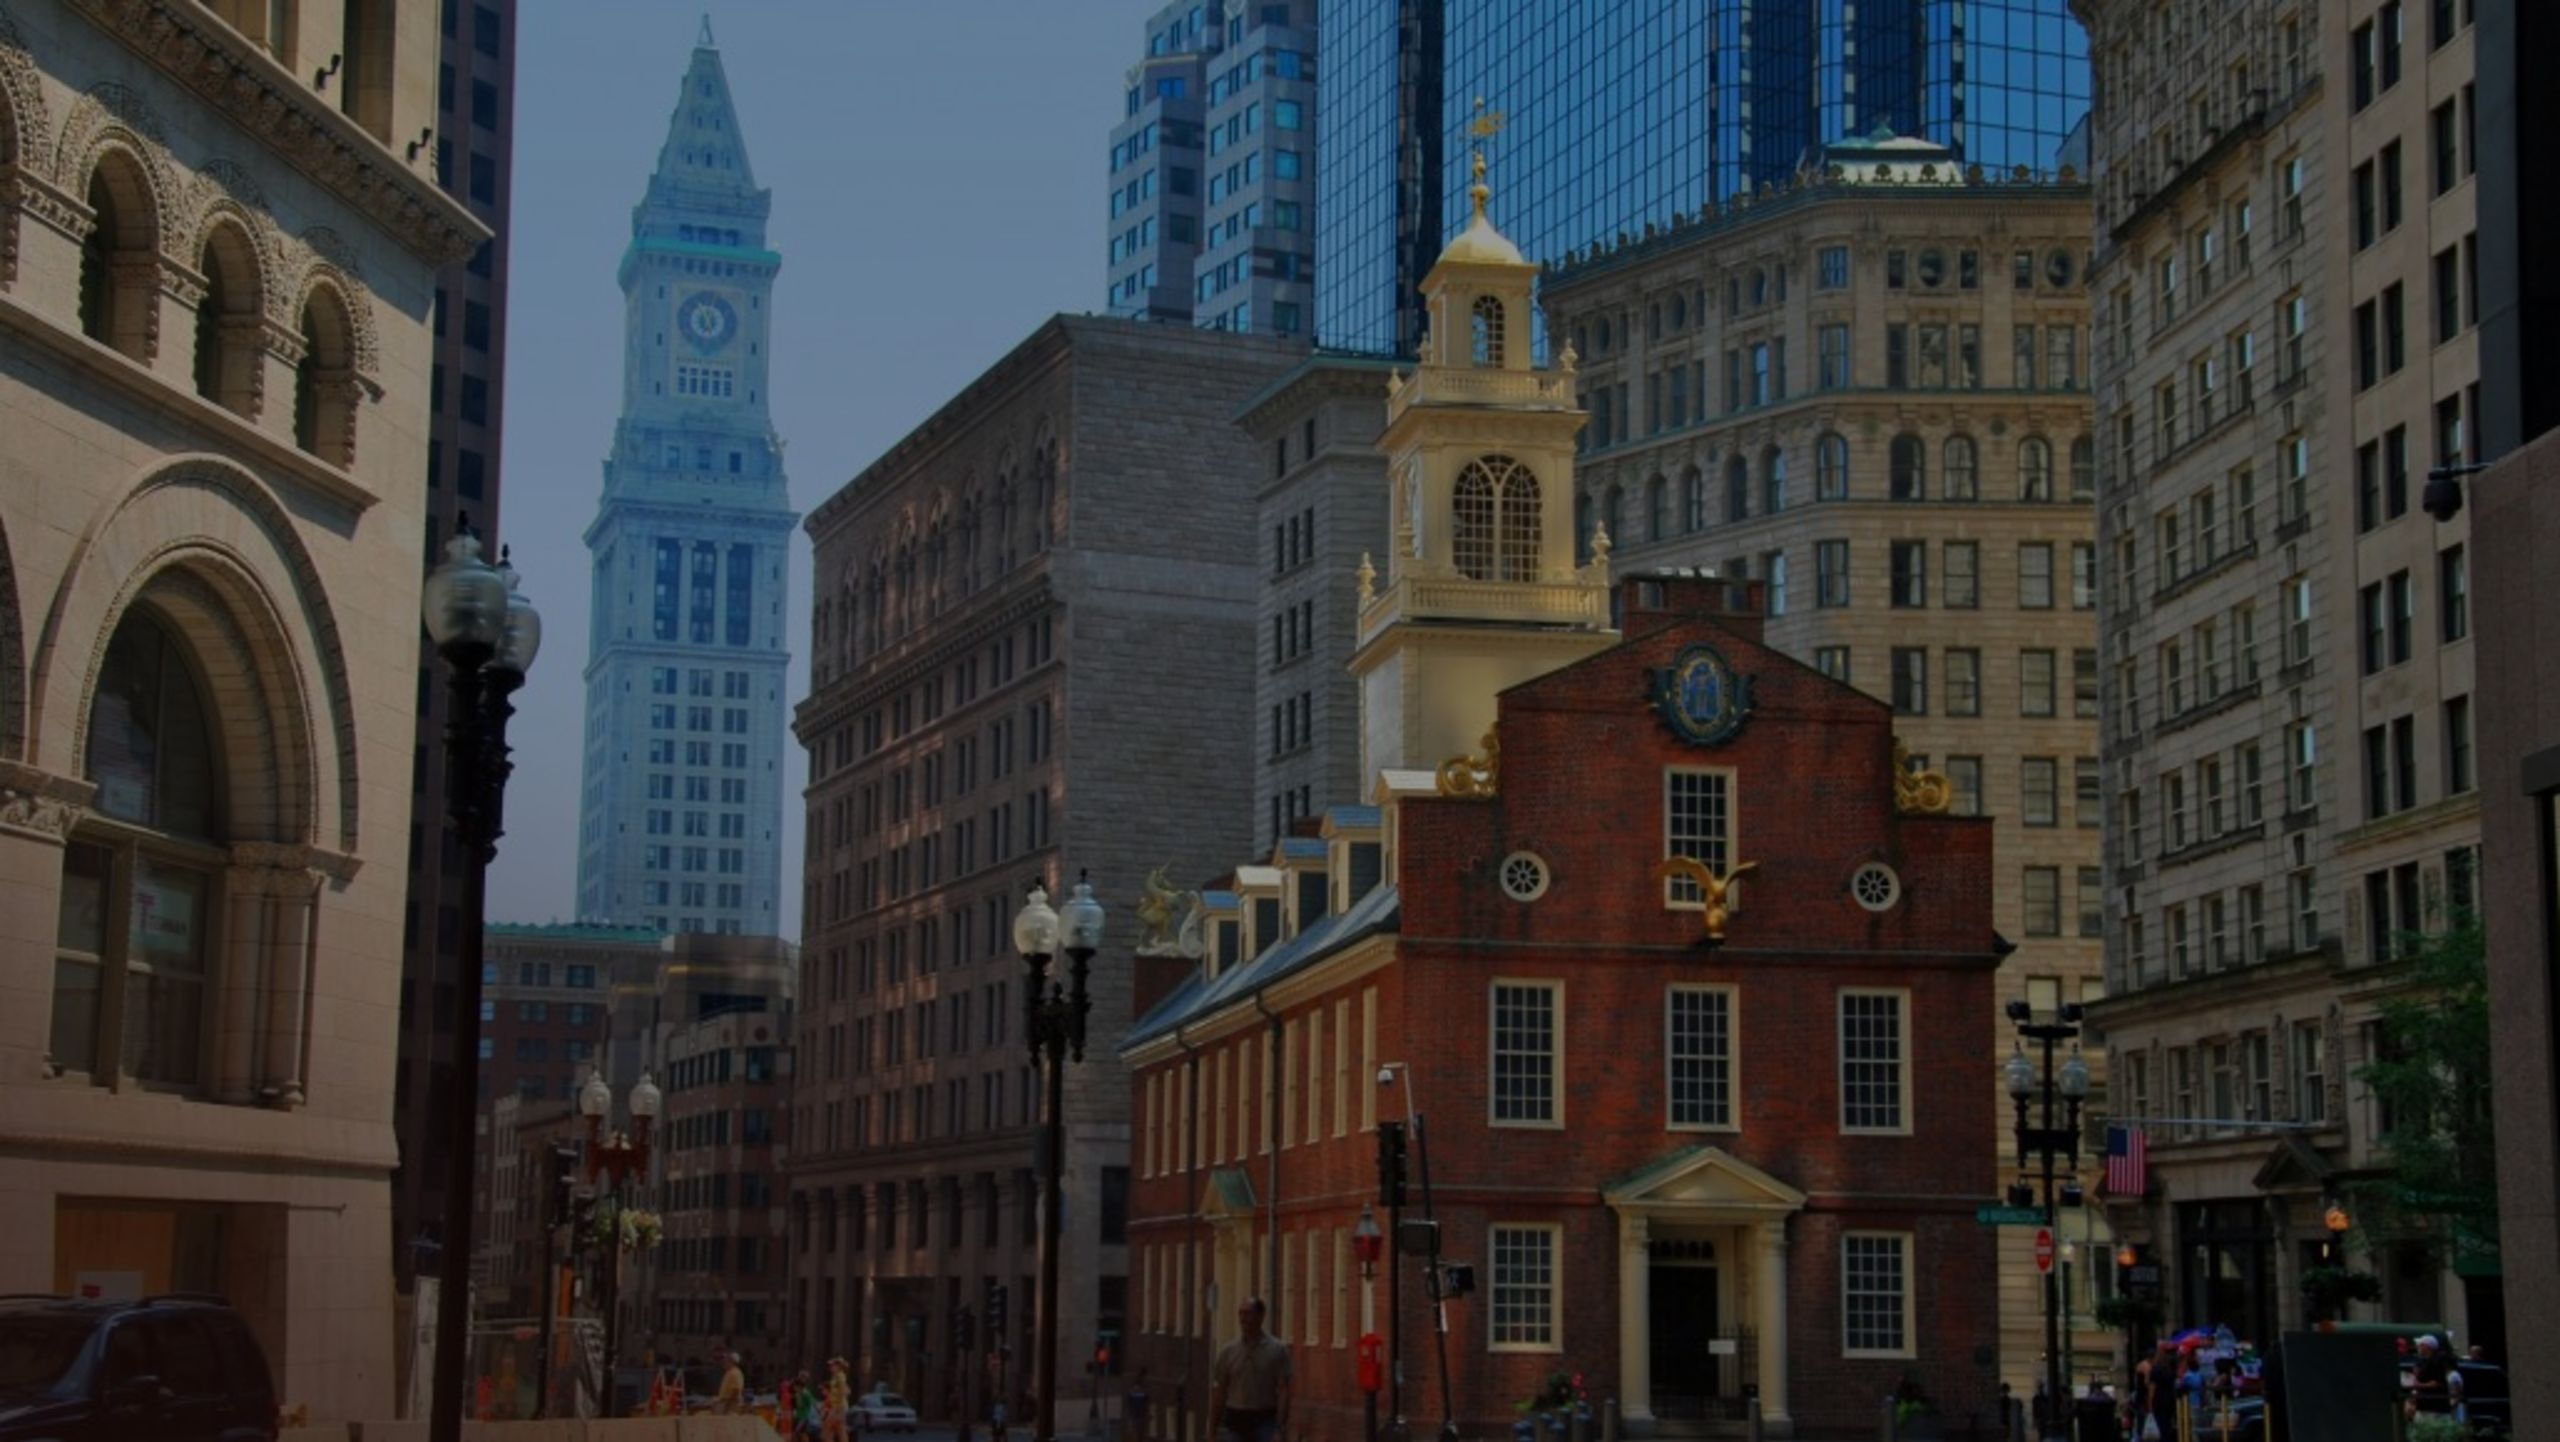 Boston Rental Prices Ranked 5th Most Expensive In U.S.